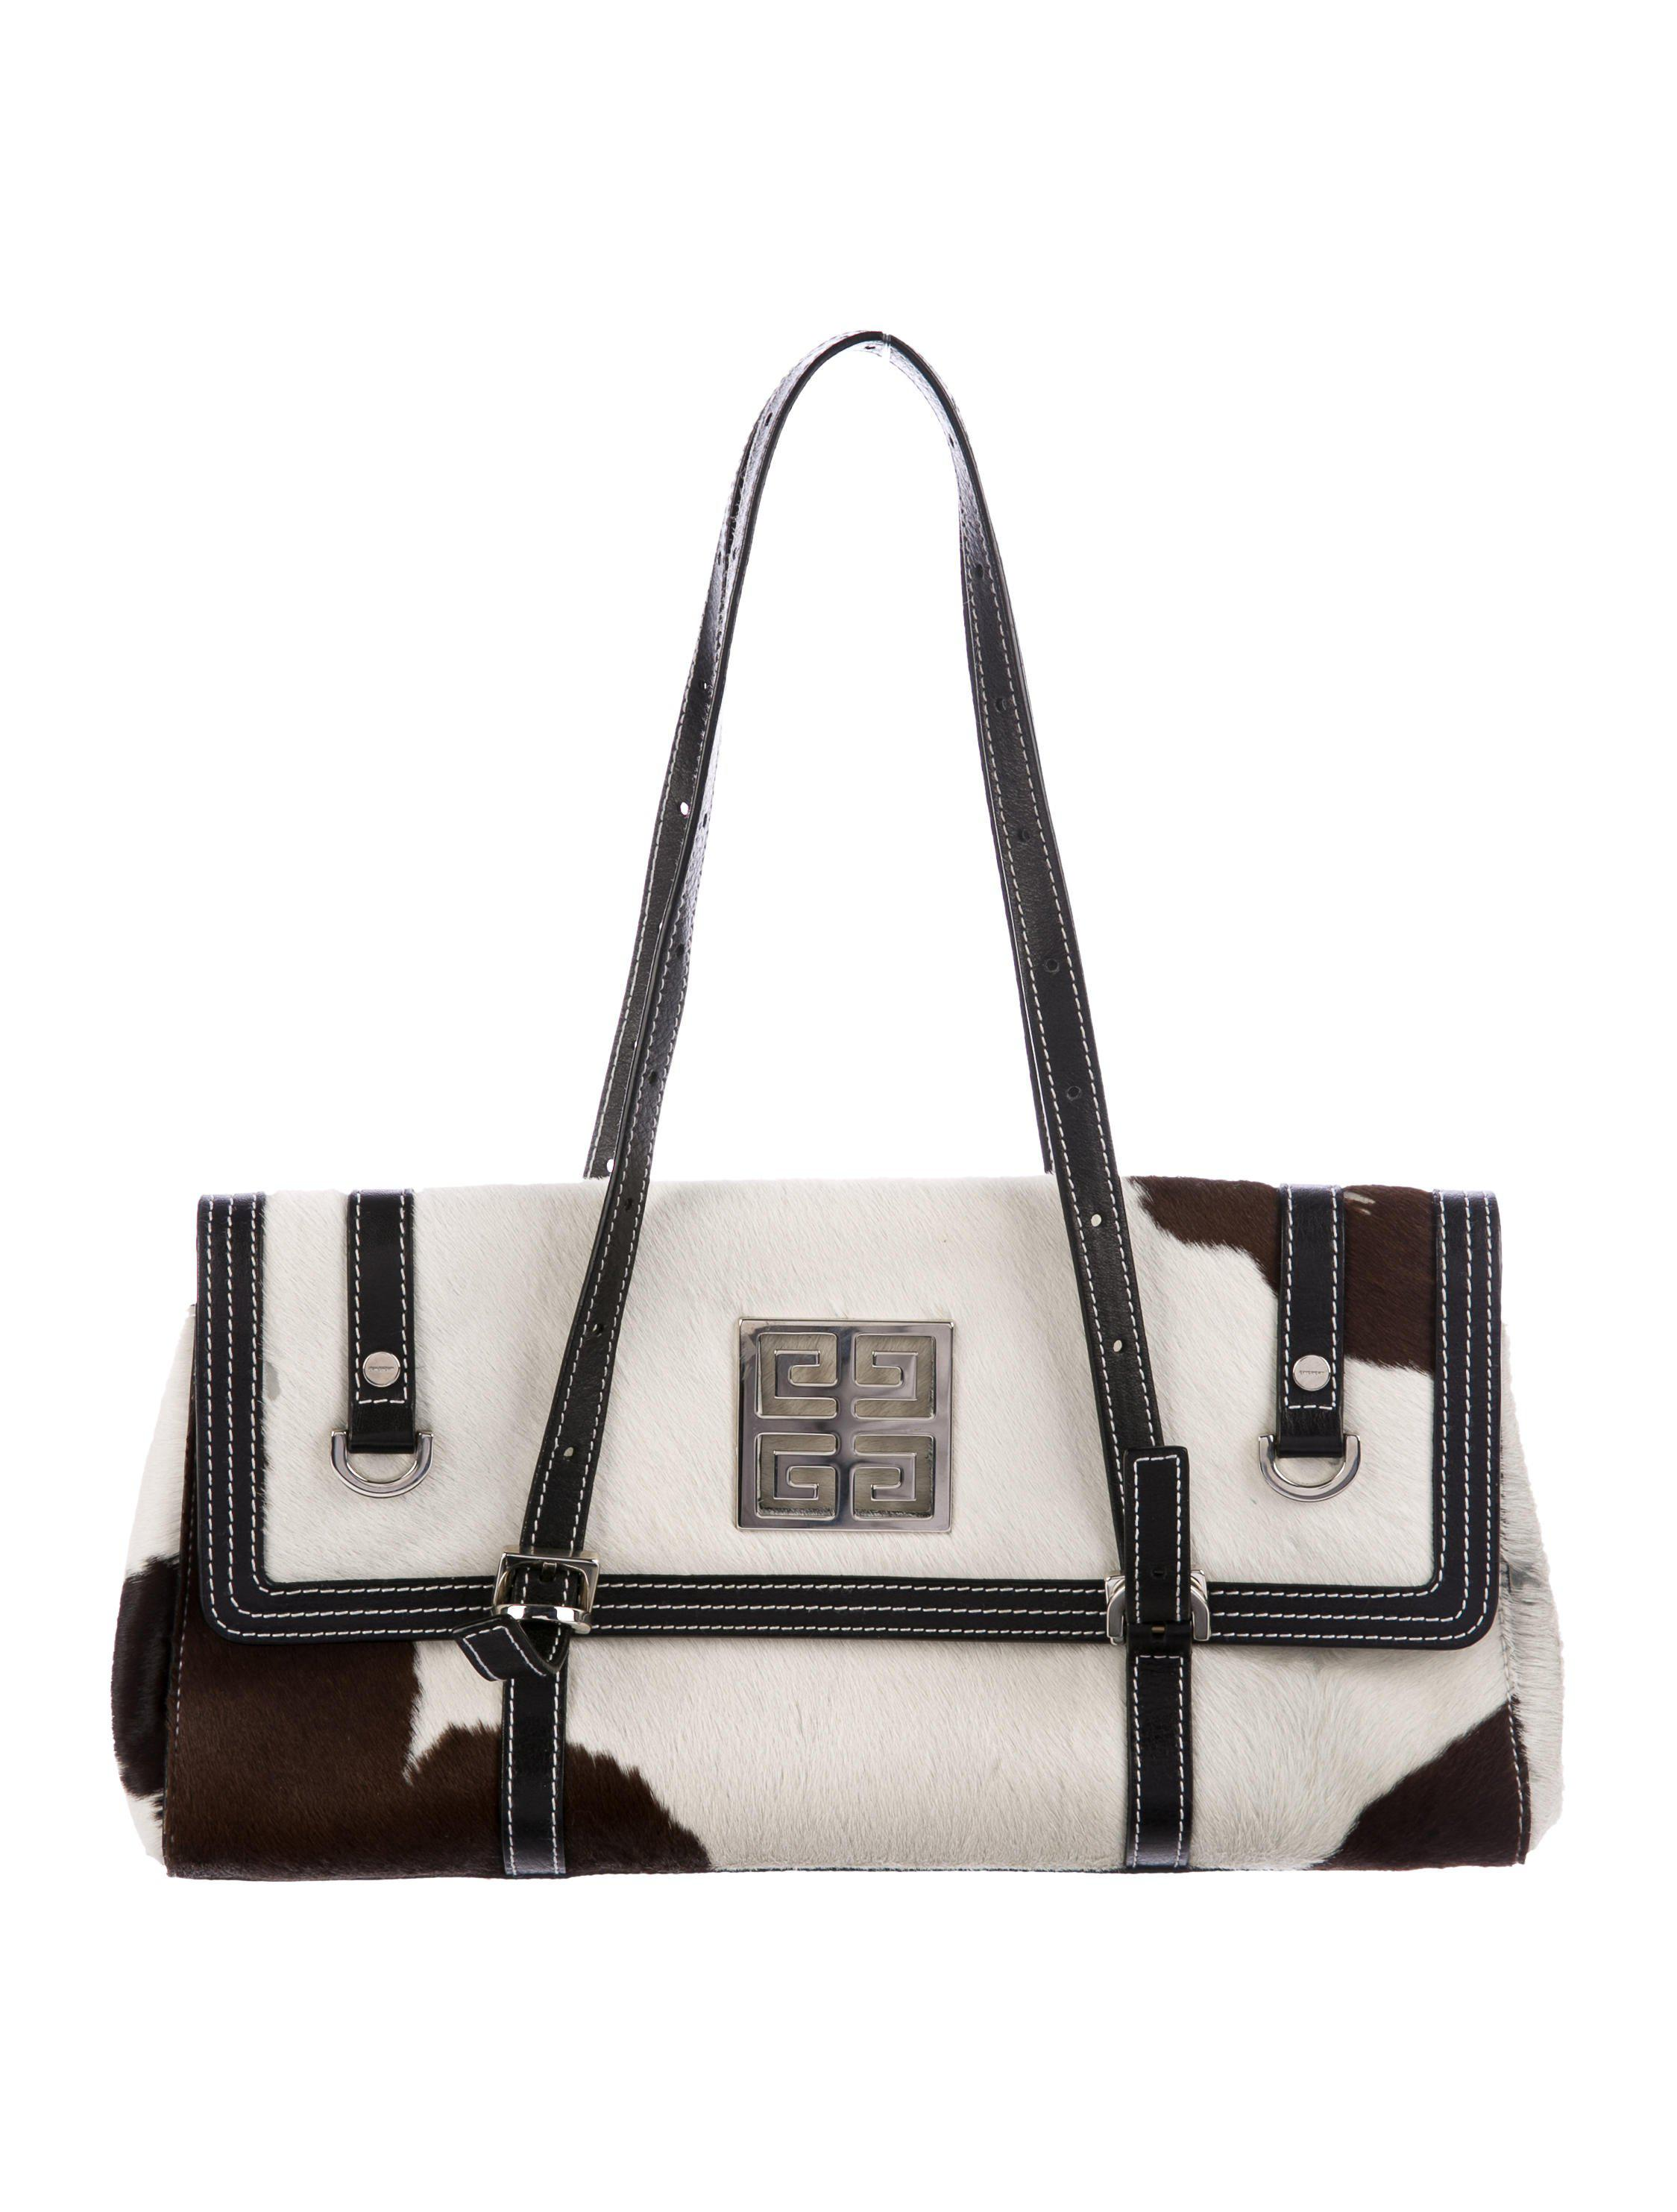 26fc5a697d50 Lyst - Givenchy Ponyhair Shoulder Bag Brown in Metallic